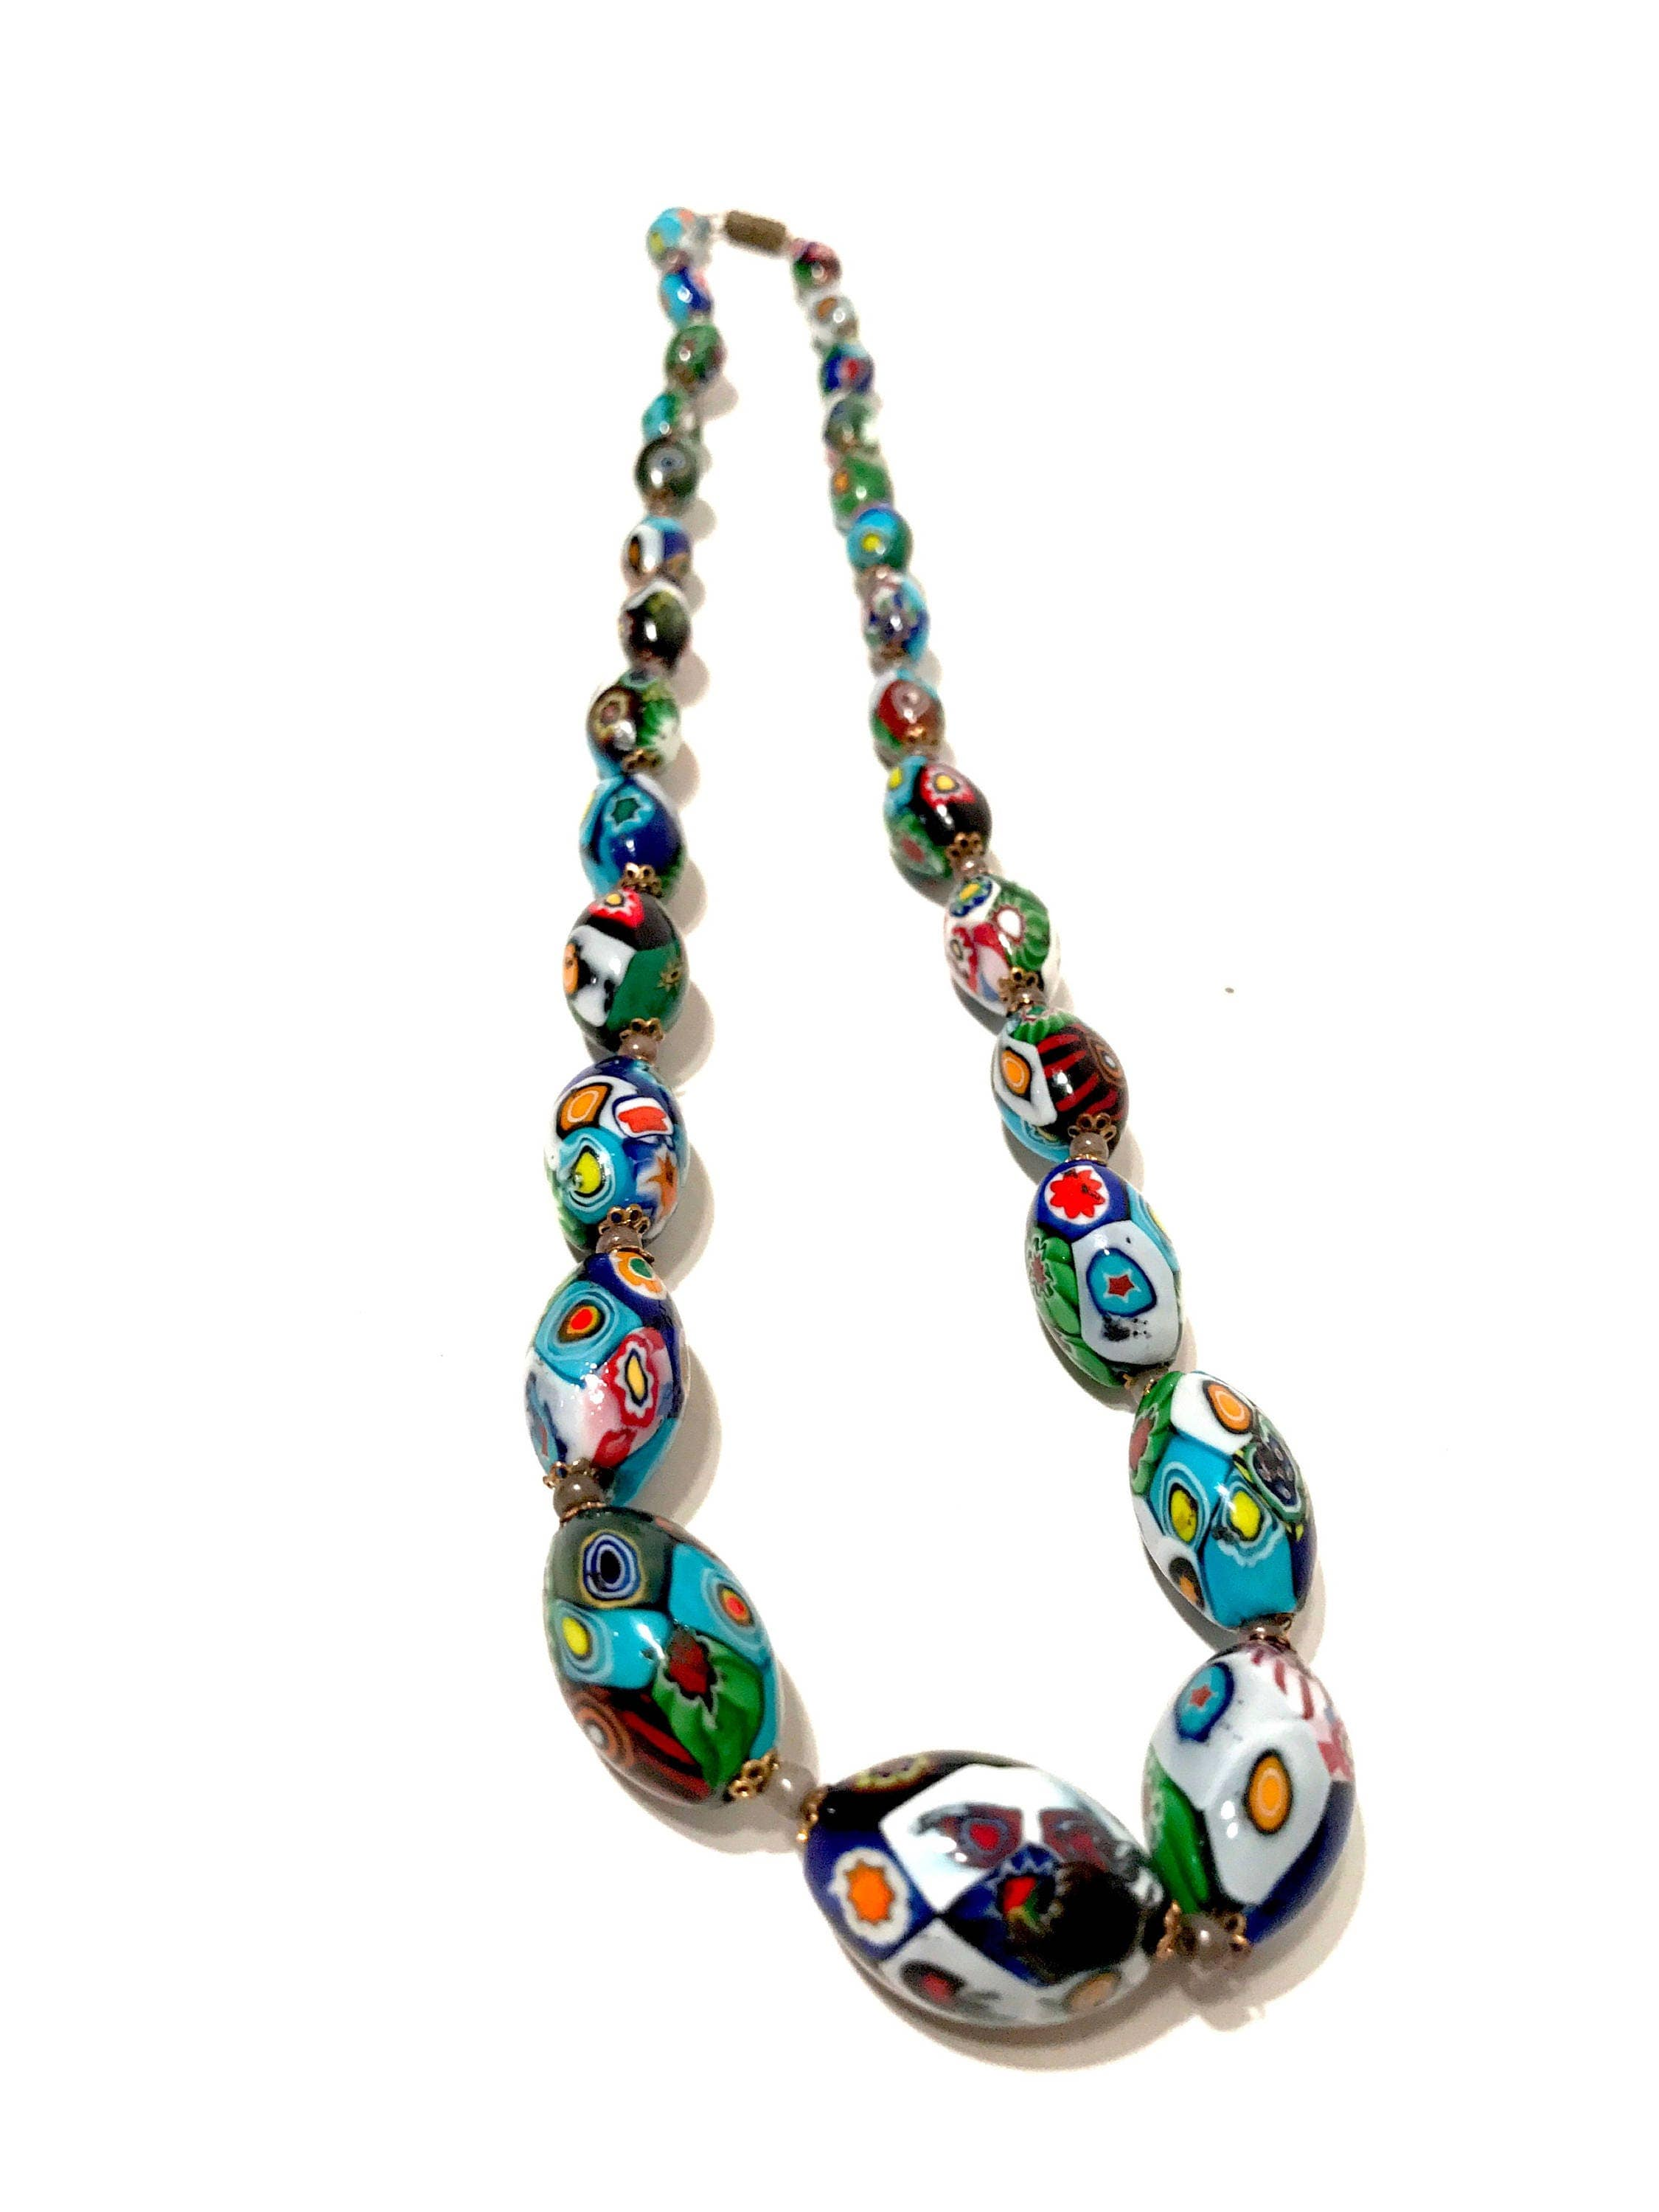 woodbridge art susan beads glass swo necklace designs turquoise cahill patti featuring antiques